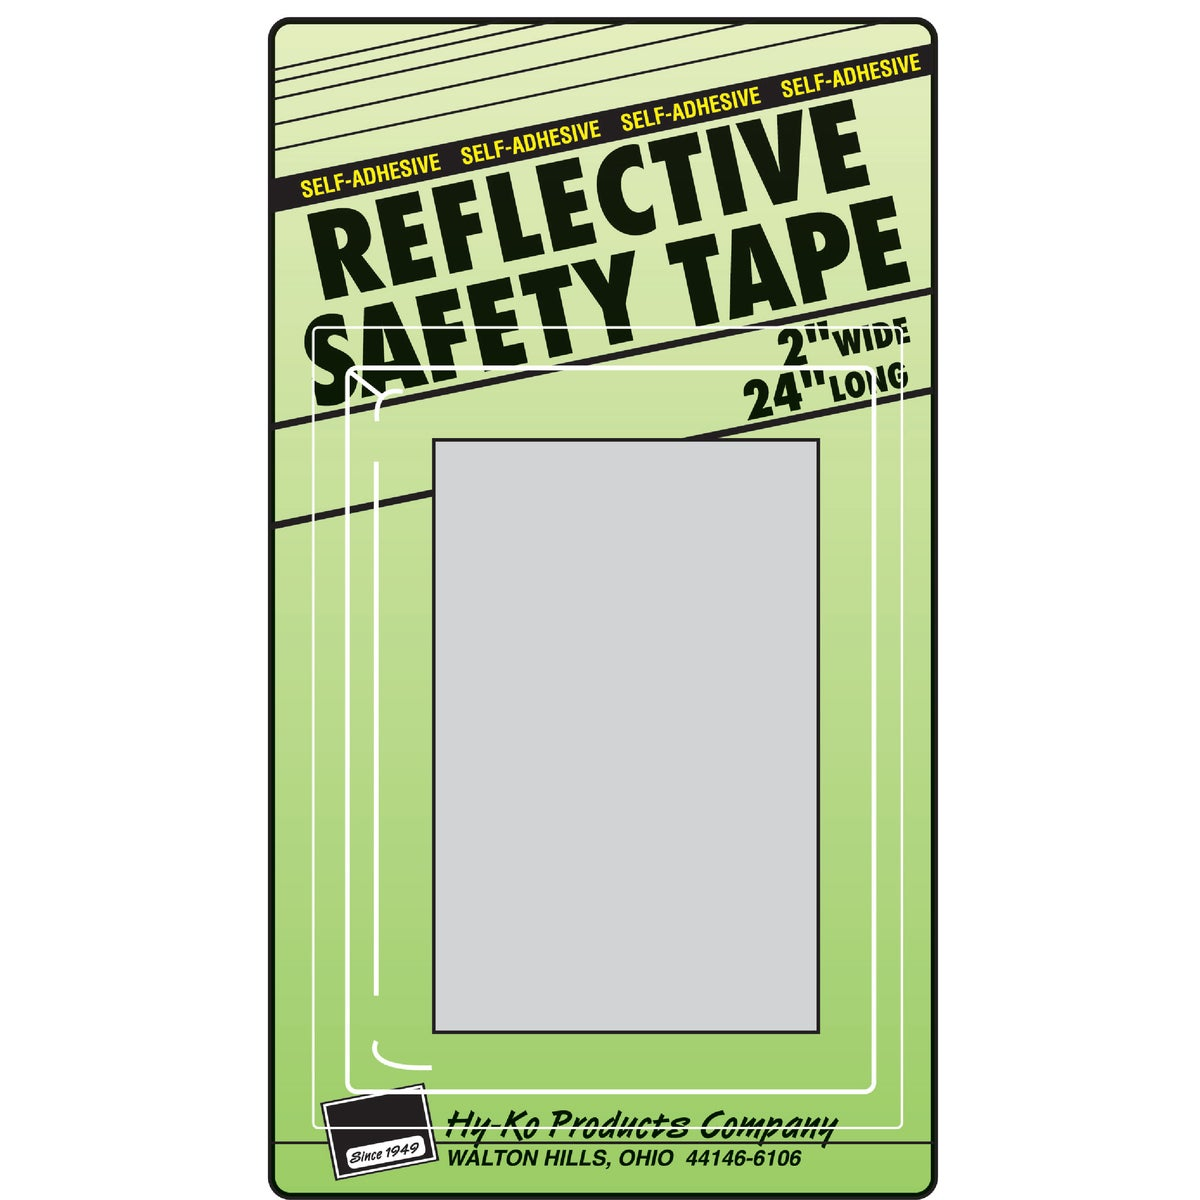 SILVER REFLECTIVE TAPE - TAPE-3 by Hy Ko Prods Co